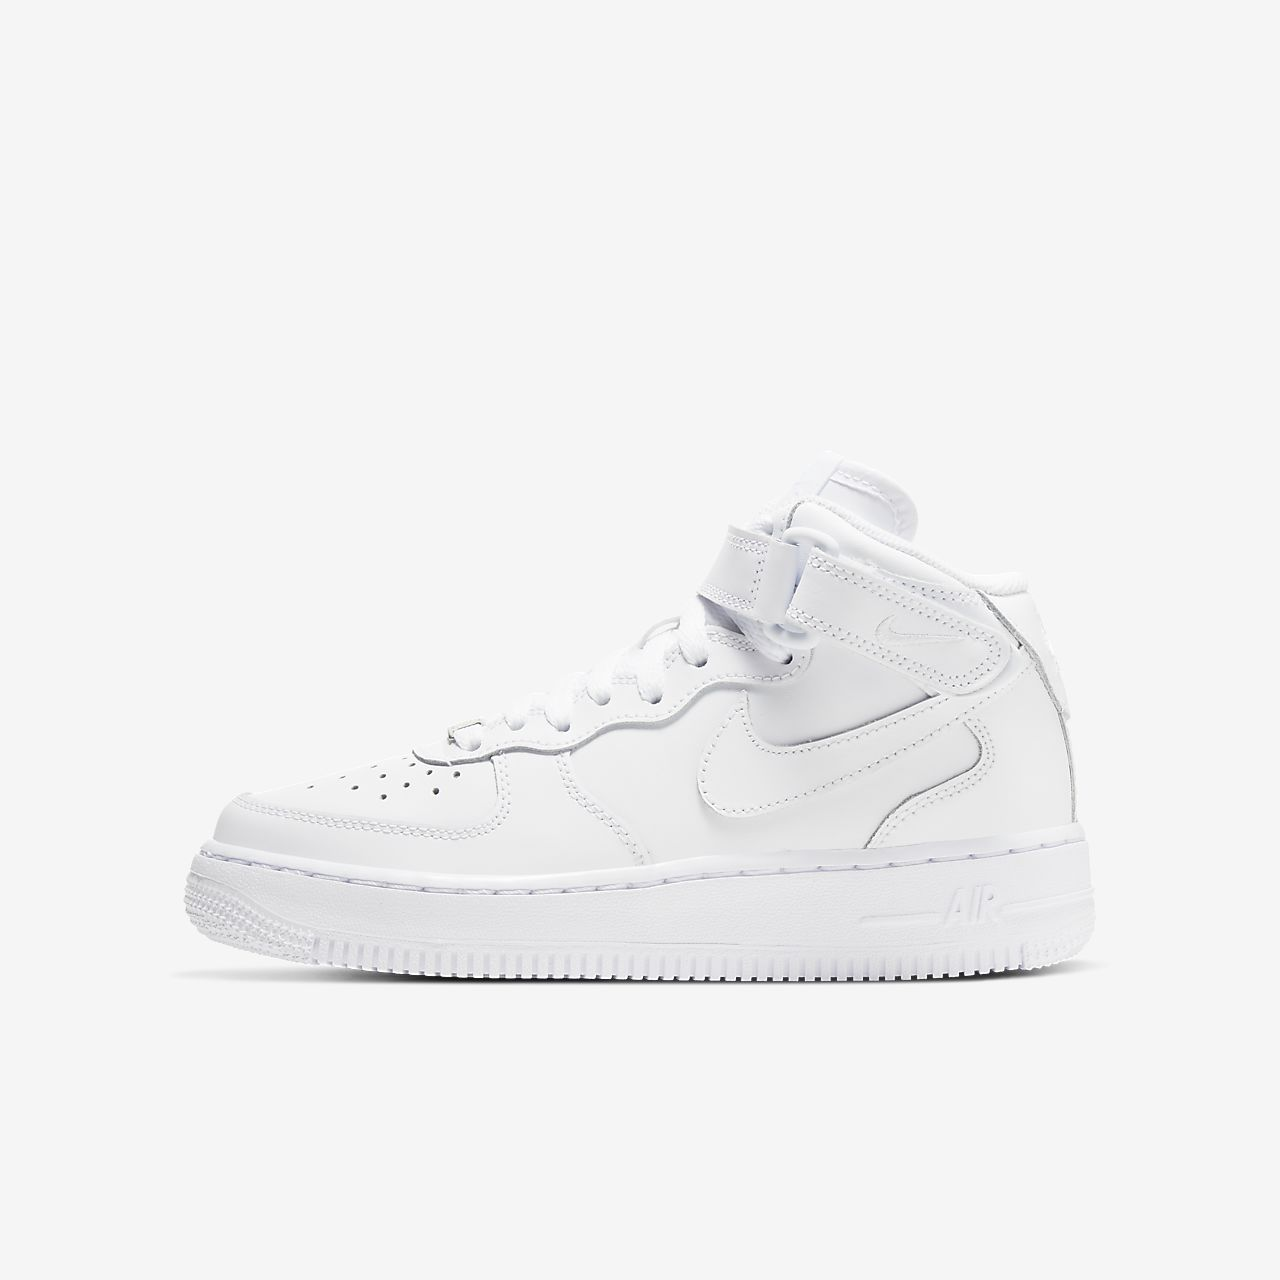 7f11f236e24748 Nike Air Force 1 Mid 06 Big Kids  Shoe. Nike.com